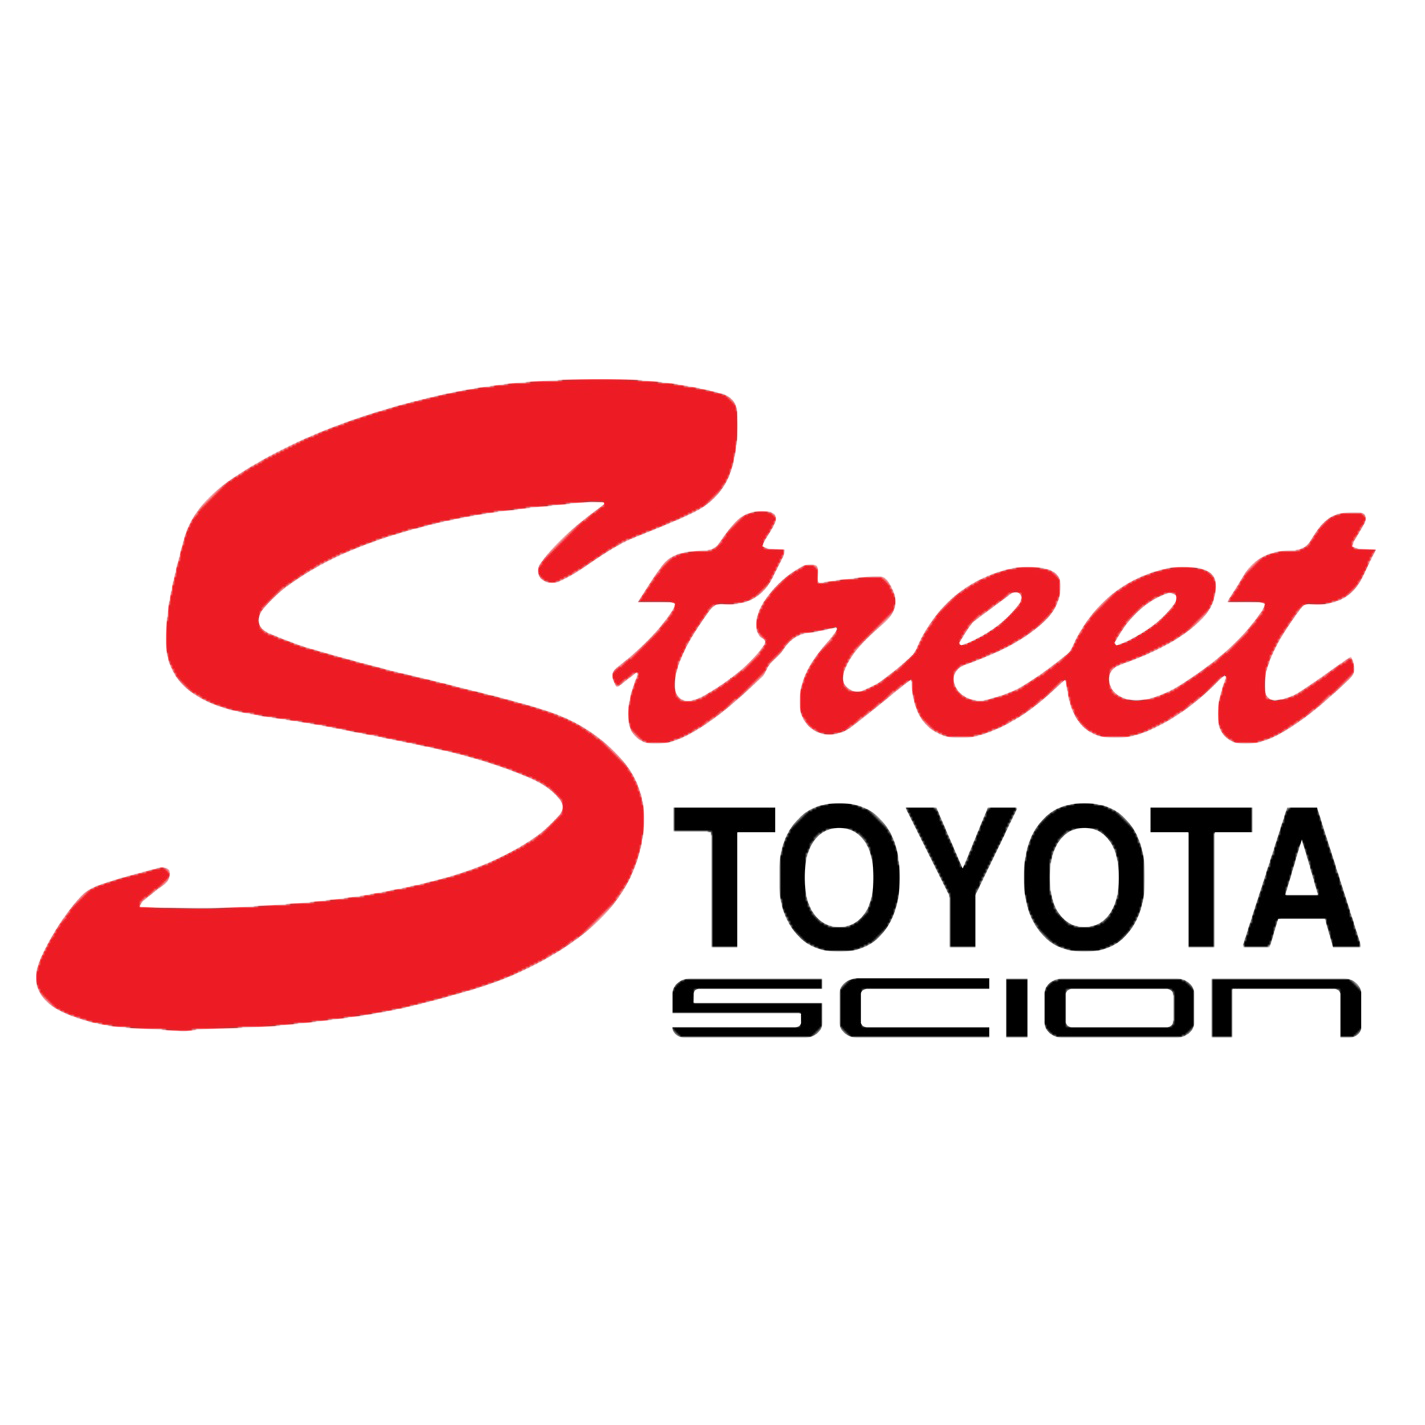 street toyota 4500 s soncy rd amarillo, tx auto dealers - mapquest